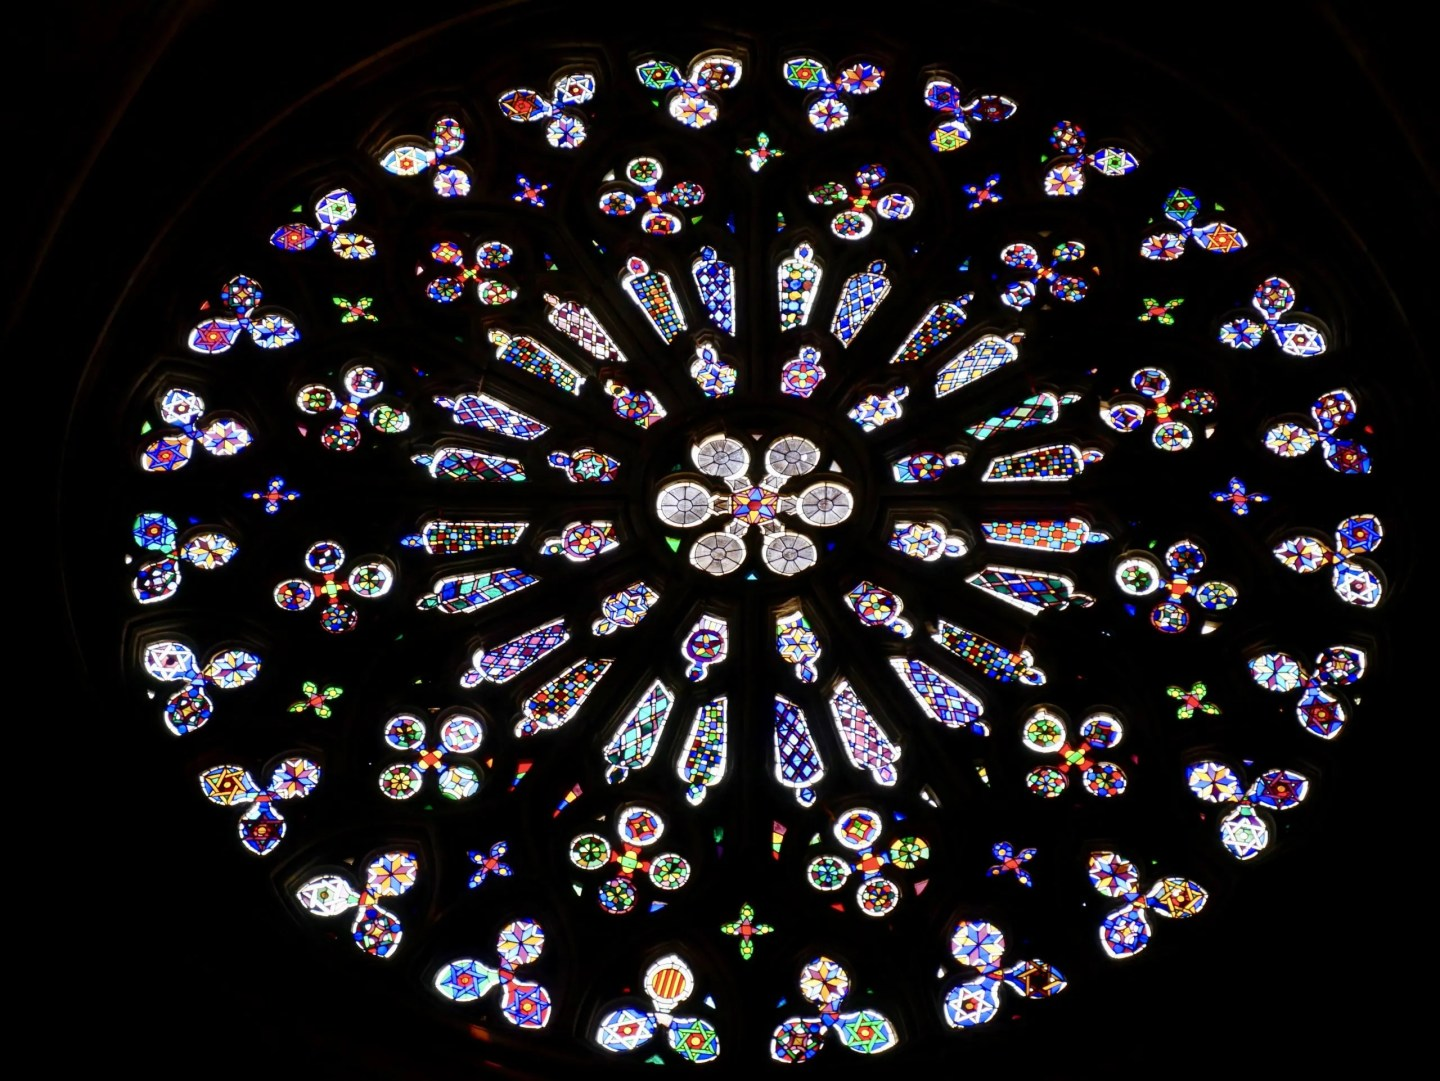 Rose window Sant Cugat